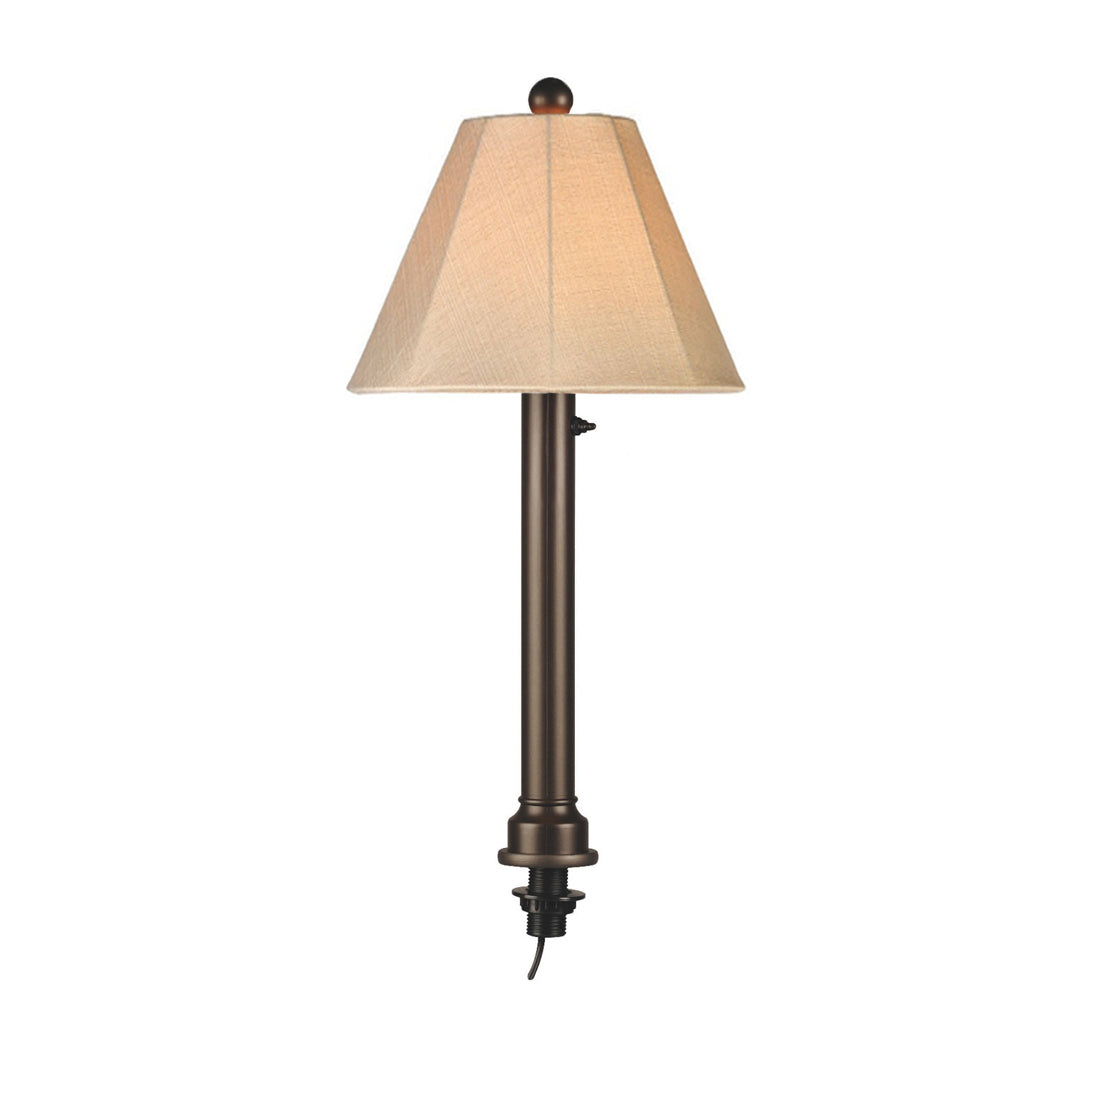 "Umbrella Table Lamp 20777 with 2"" bronze tube body and antique beige linen Sunbrella shade fabric"